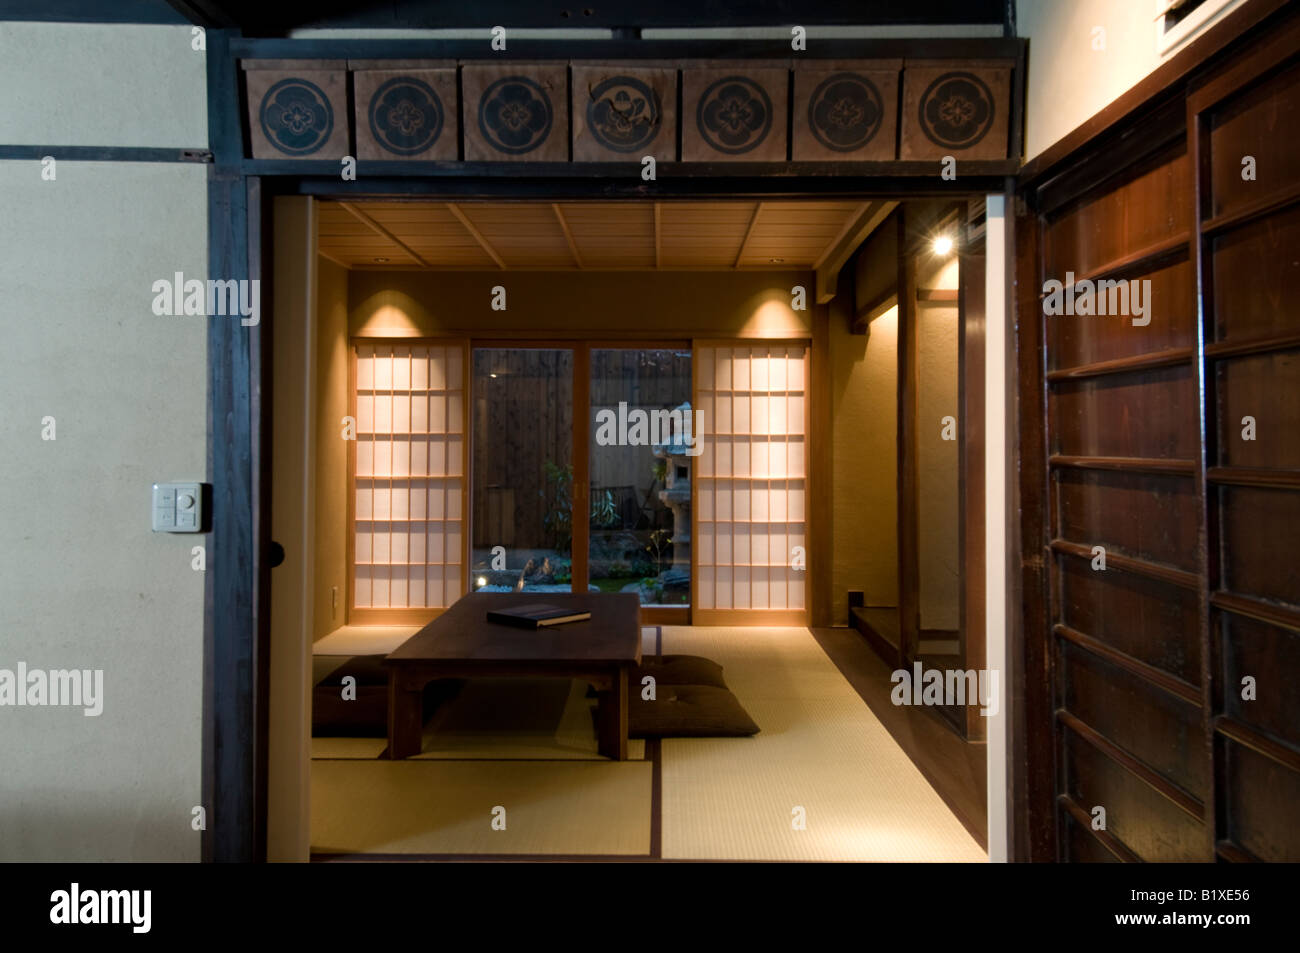 Japan Traditional Home Interior Living Room With Sliding Doors And Tatami  Mats On The Floor Looking Part 55